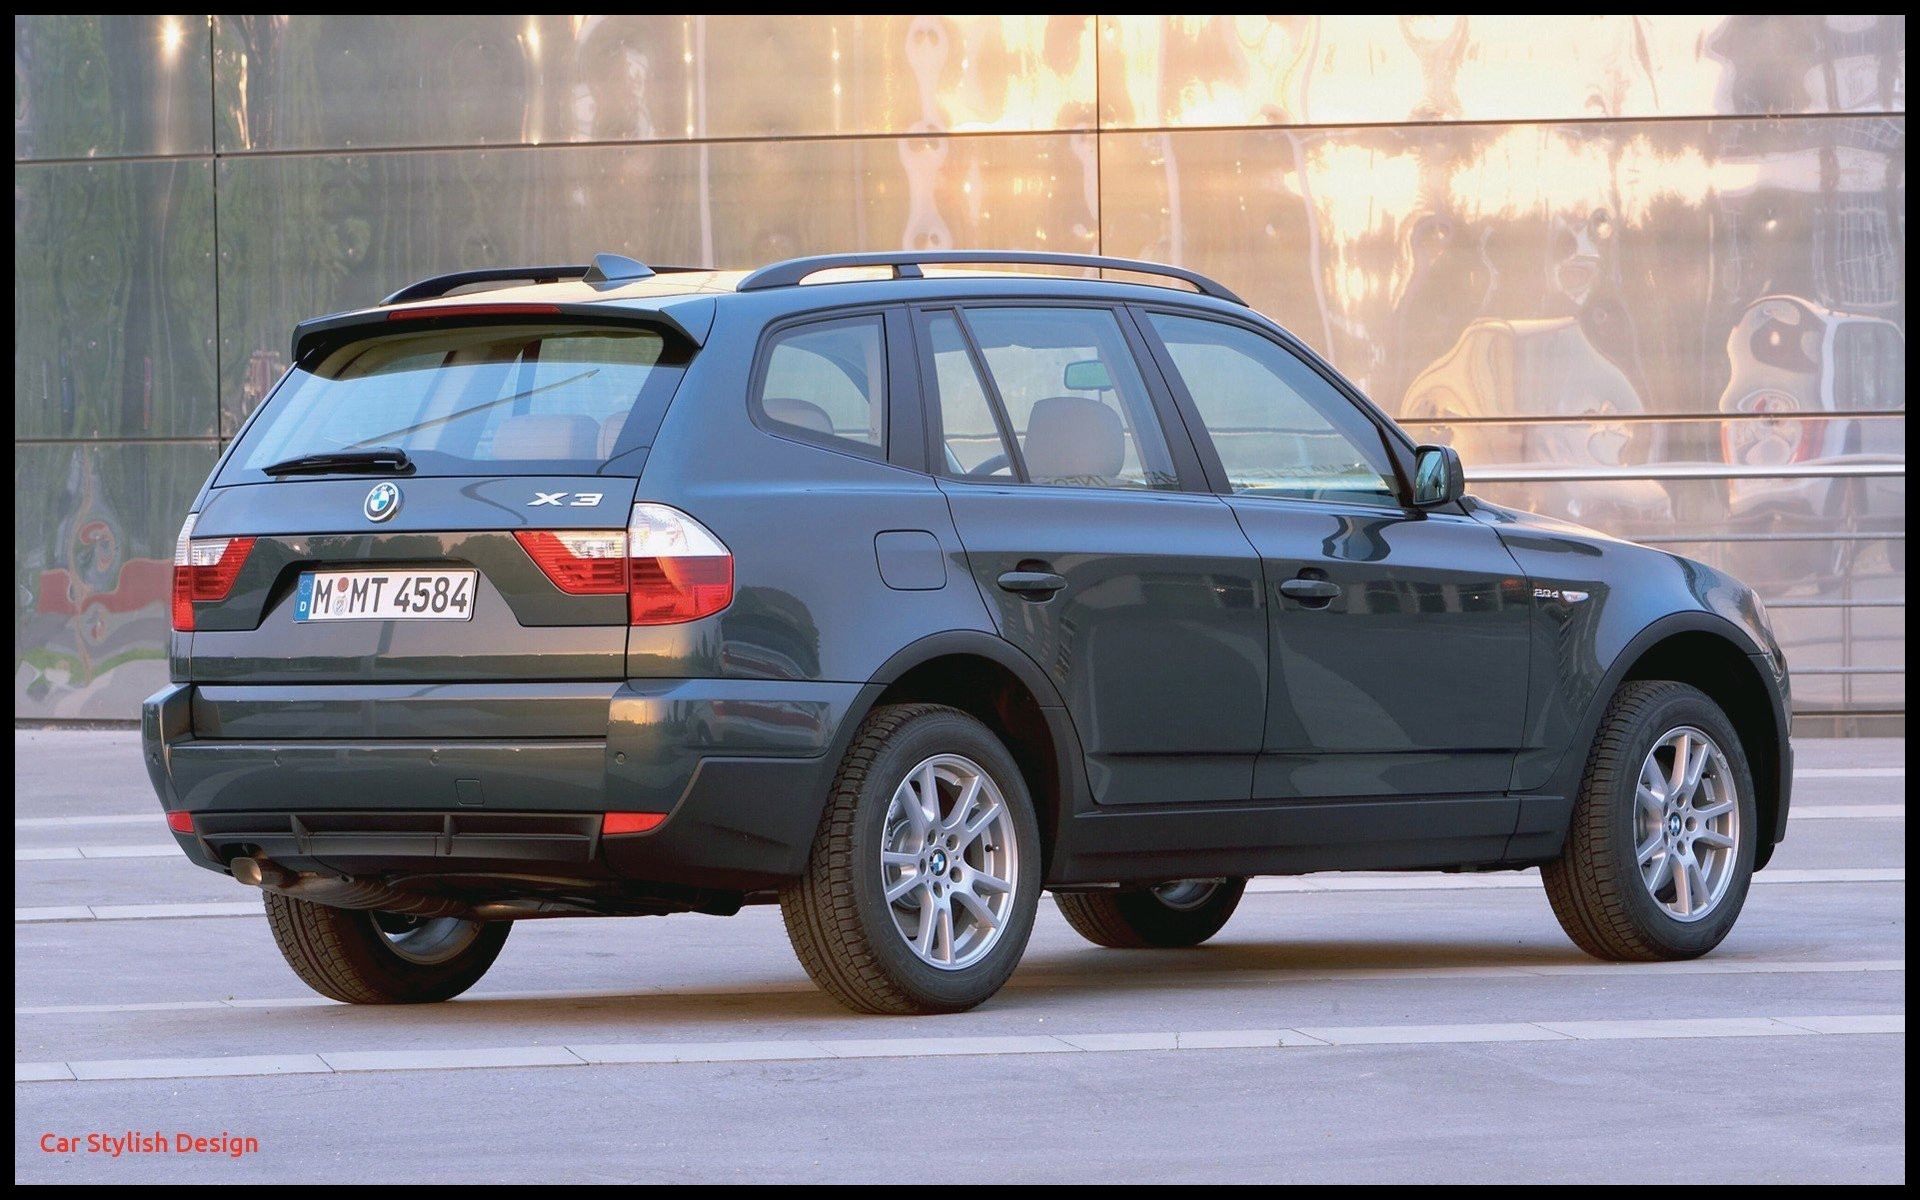 Used Bmw X3 Elegant Best Bmw X3 2 0d 2007 Wallpapers And Hd Car Cool Used Car Wallpaper